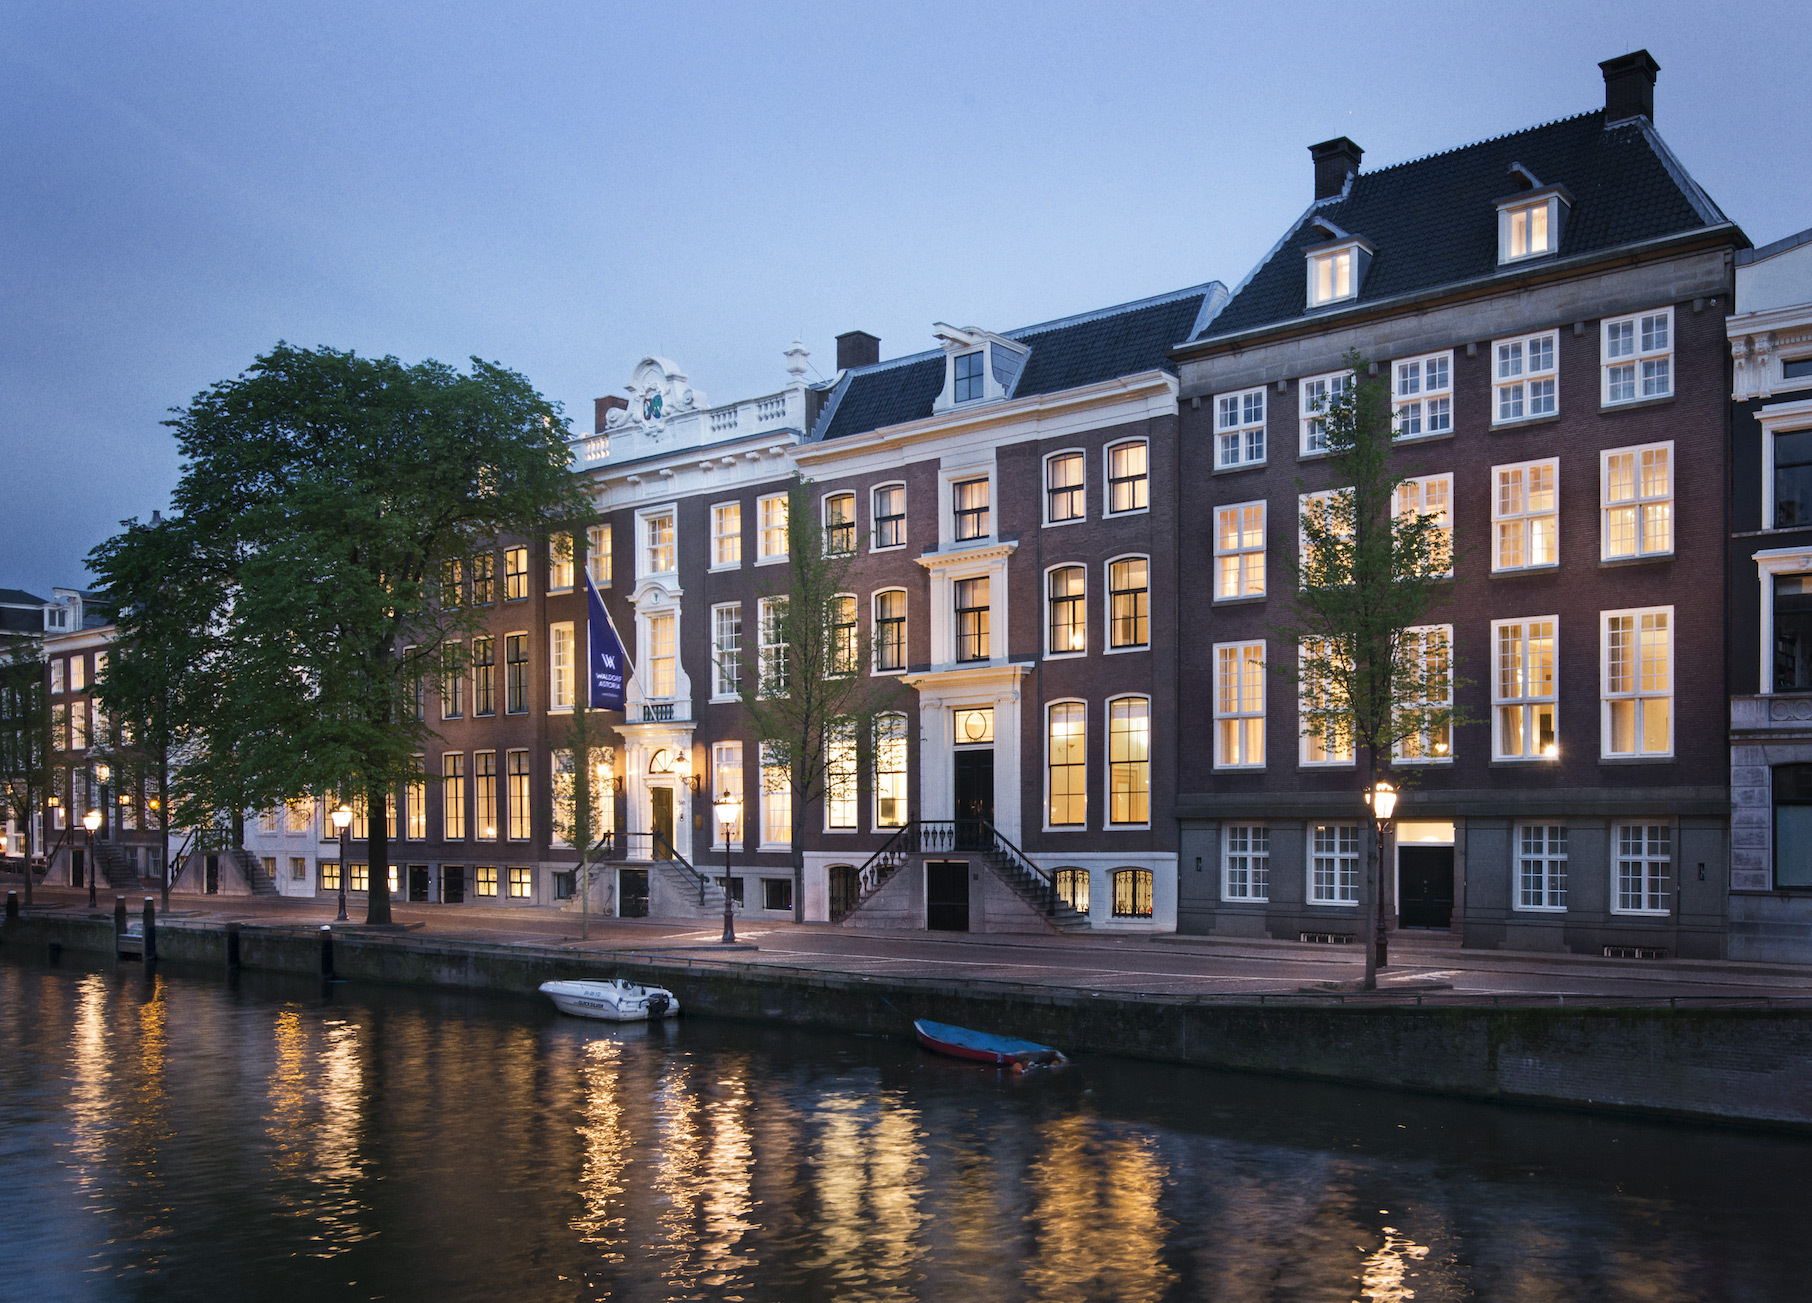 Waldorf astoria opens a luxury hotel in amsterdam for Best luxury hotel in amsterdam